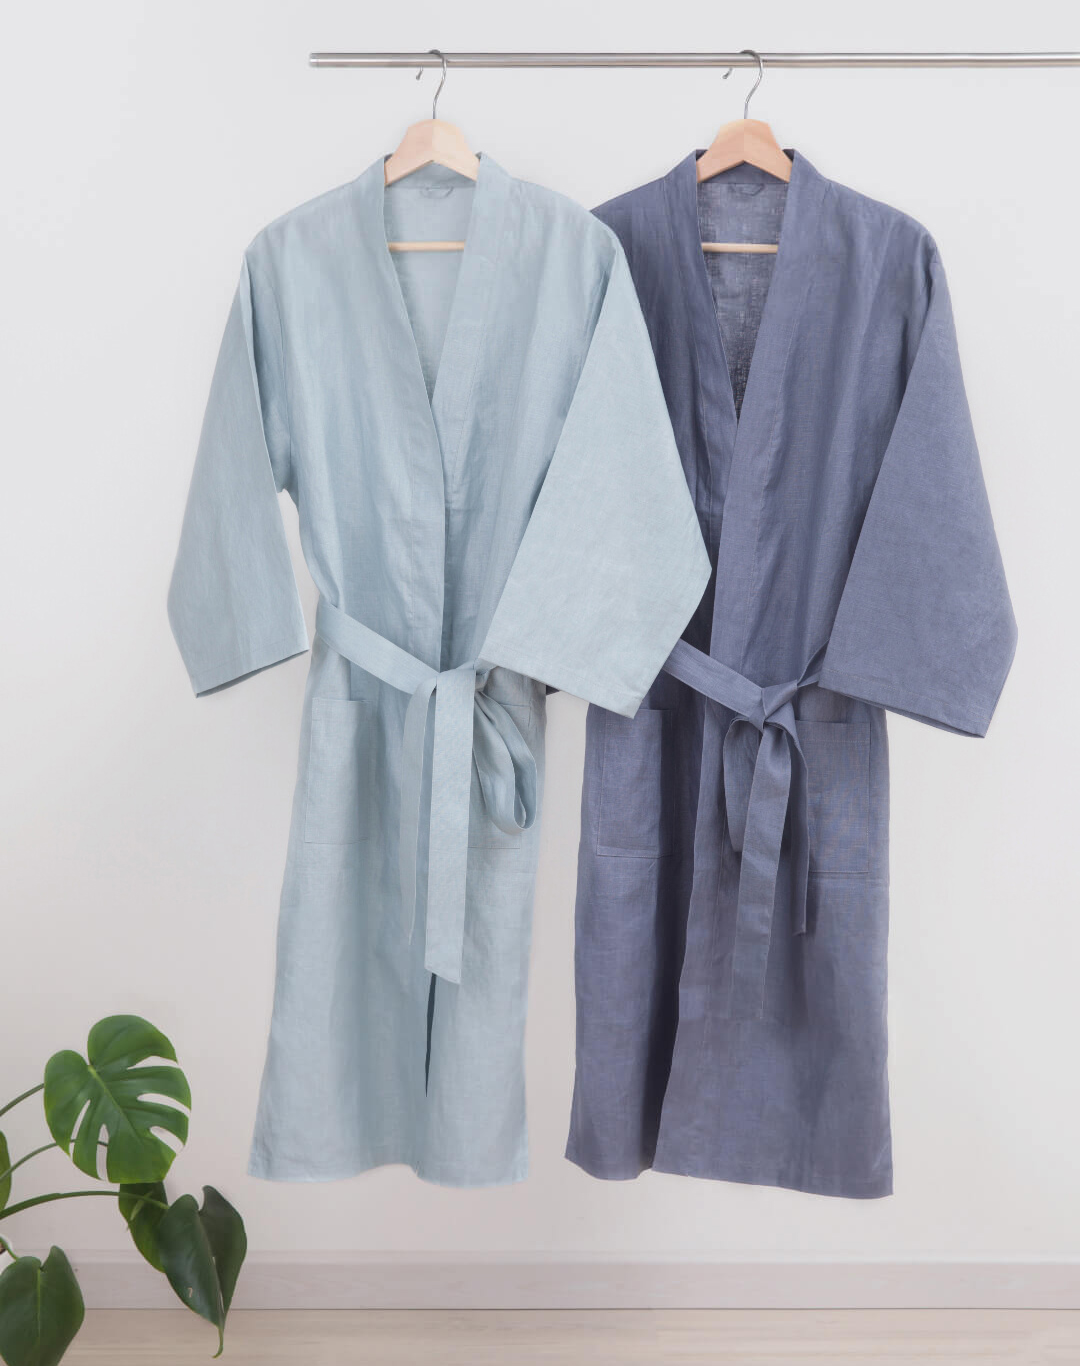 ZaxArt-Linen-Couple-Nightgown-Grey- ZY170908